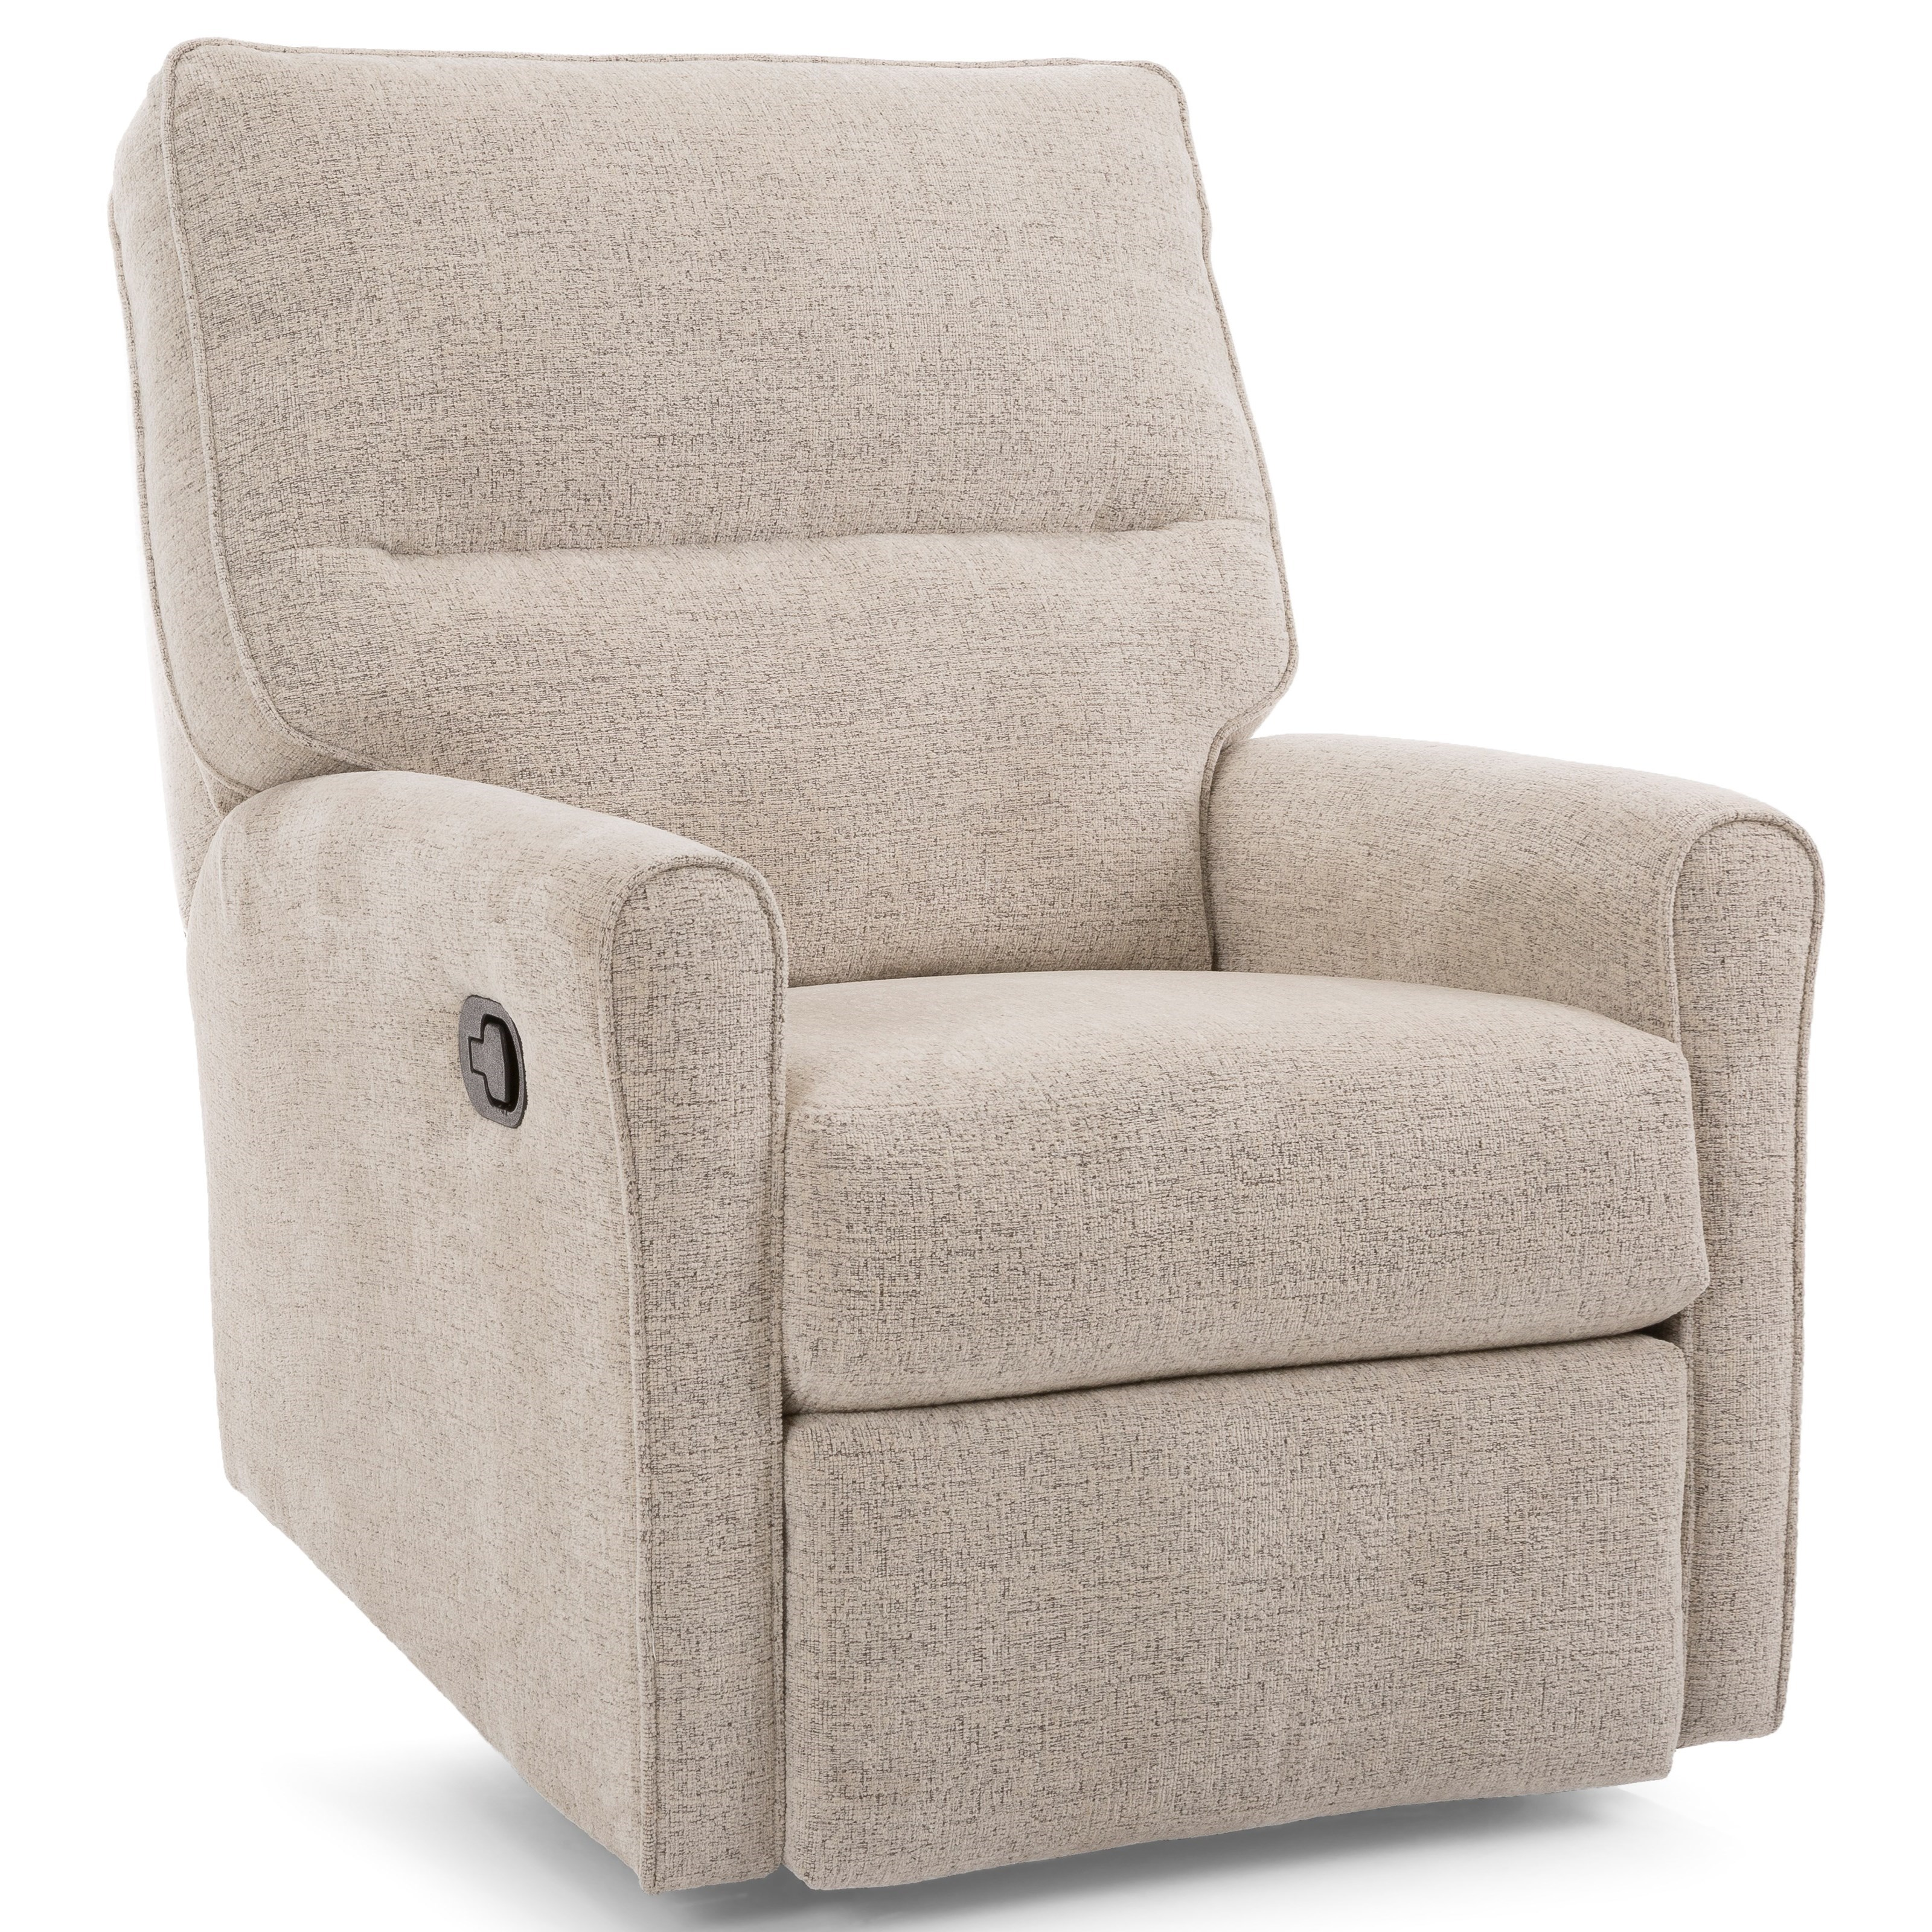 M846 Recliner by Decor-Rest at Stoney Creek Furniture